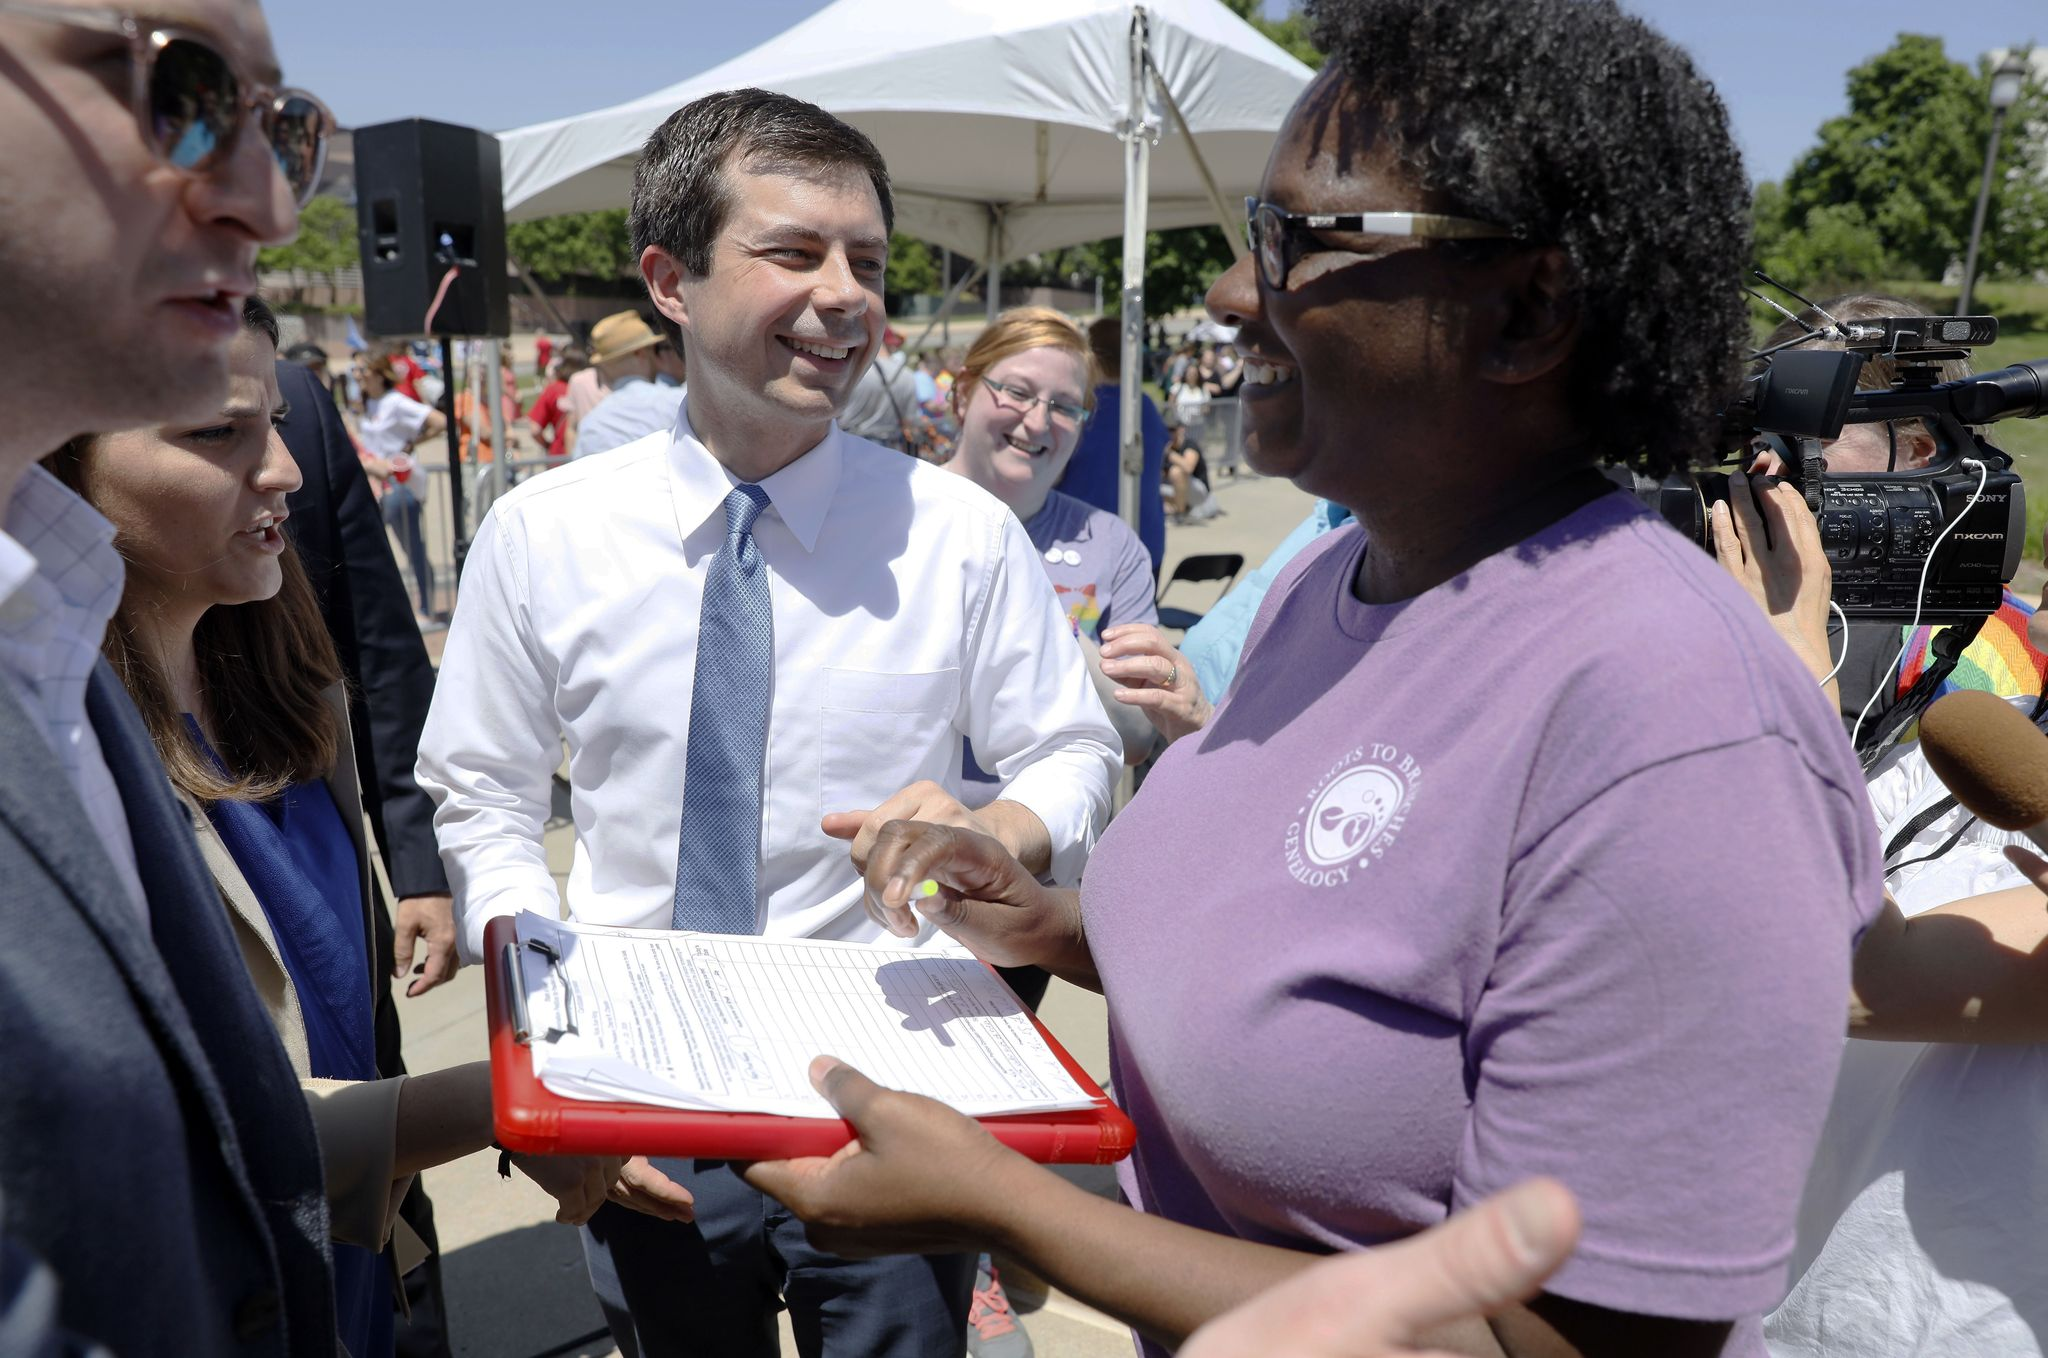 Buttigieg struggles for black supporters: They 'feel burned' by politicians